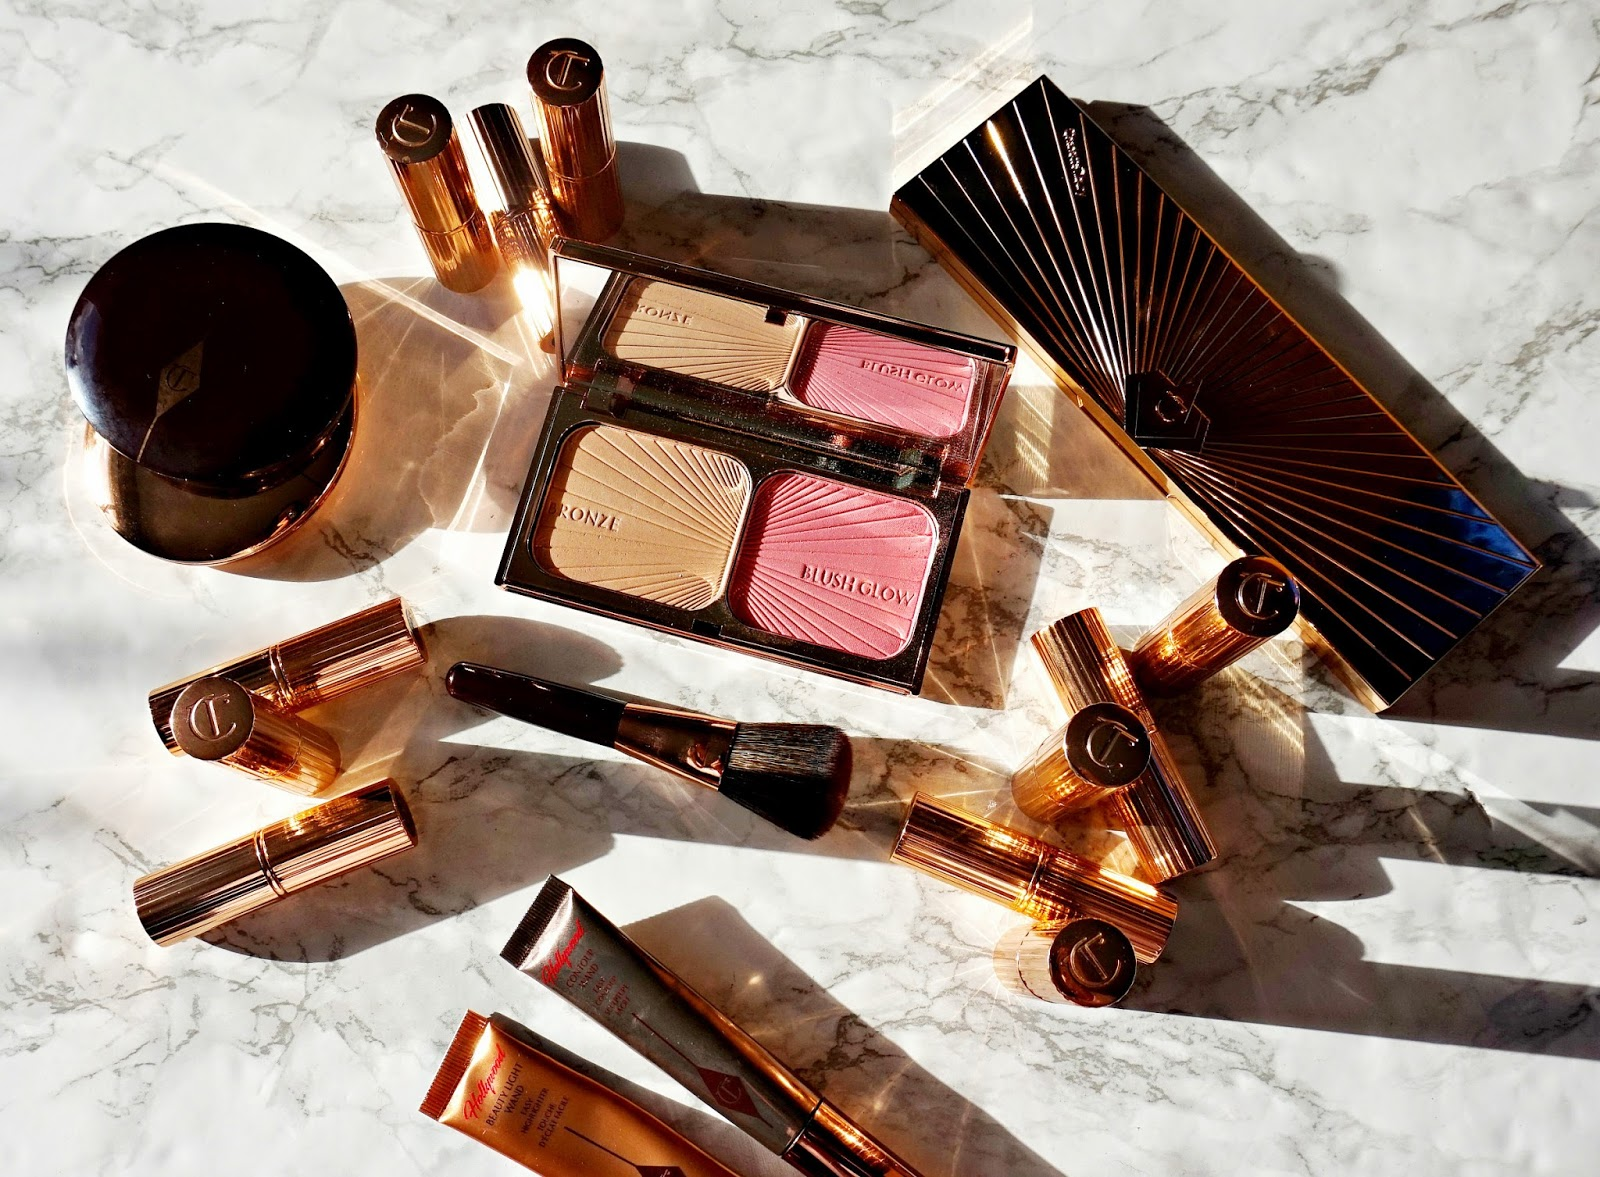 Charlotte Tilbury Bronze & Blush Review, Swatches & Giveaway